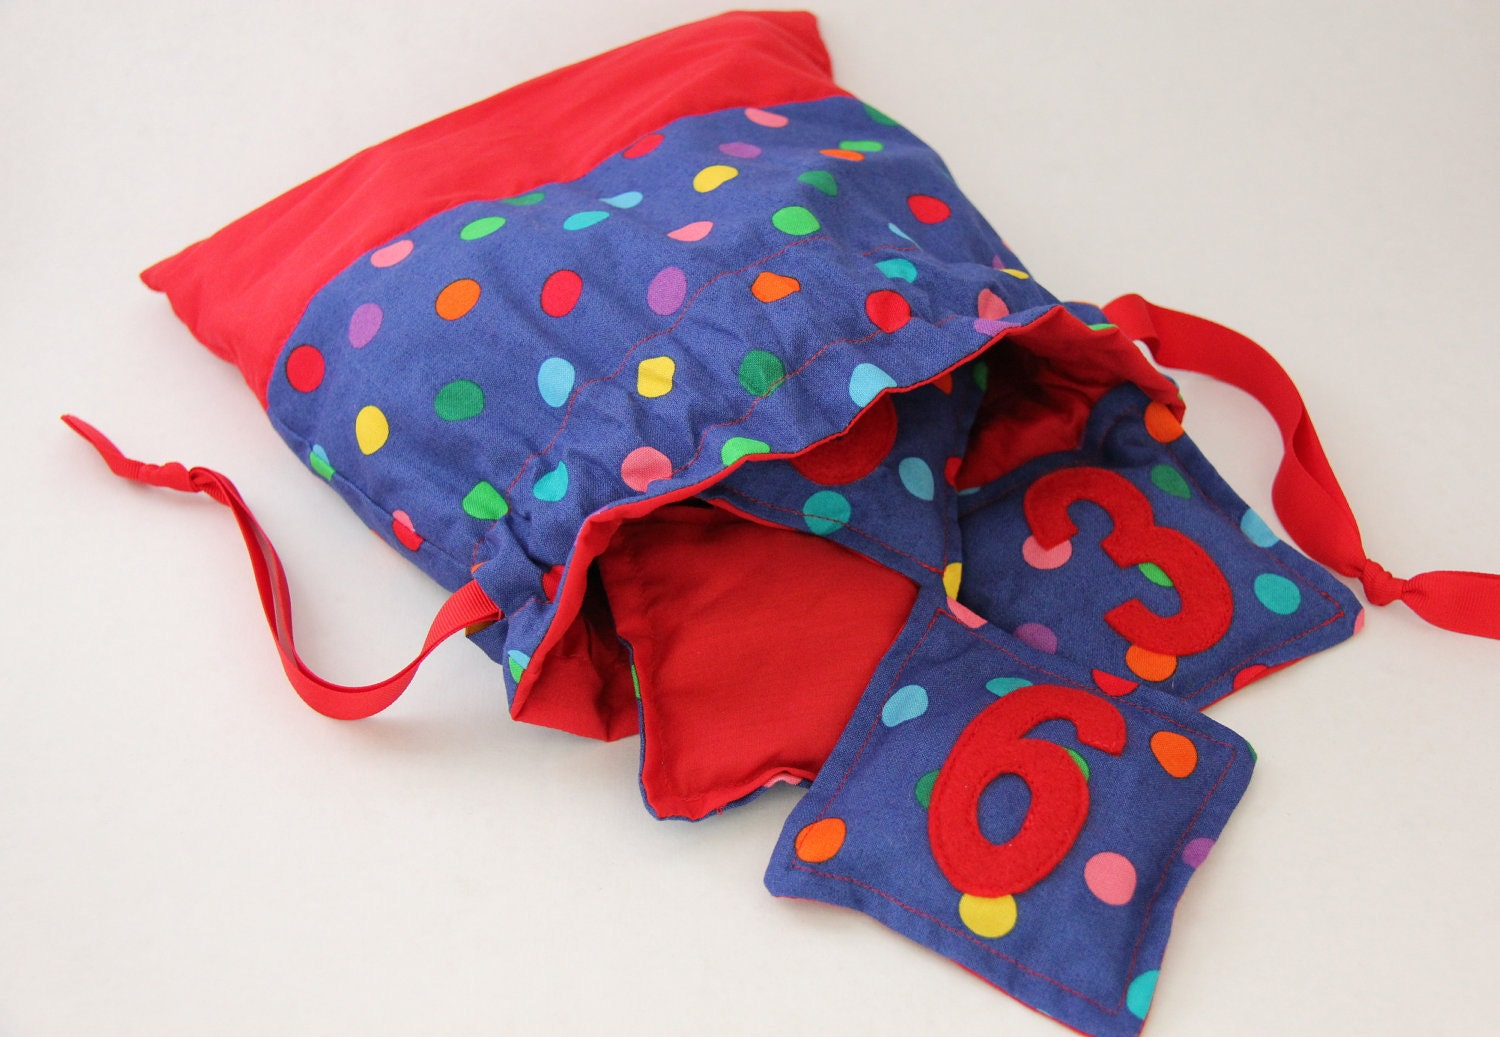 Numbered Bean Bags, Appliqued Numbers 1 - 10, Blue and Red with Rainbow Polka Dots, Coordinating Drawstring Bag Included - Pepperpicnic